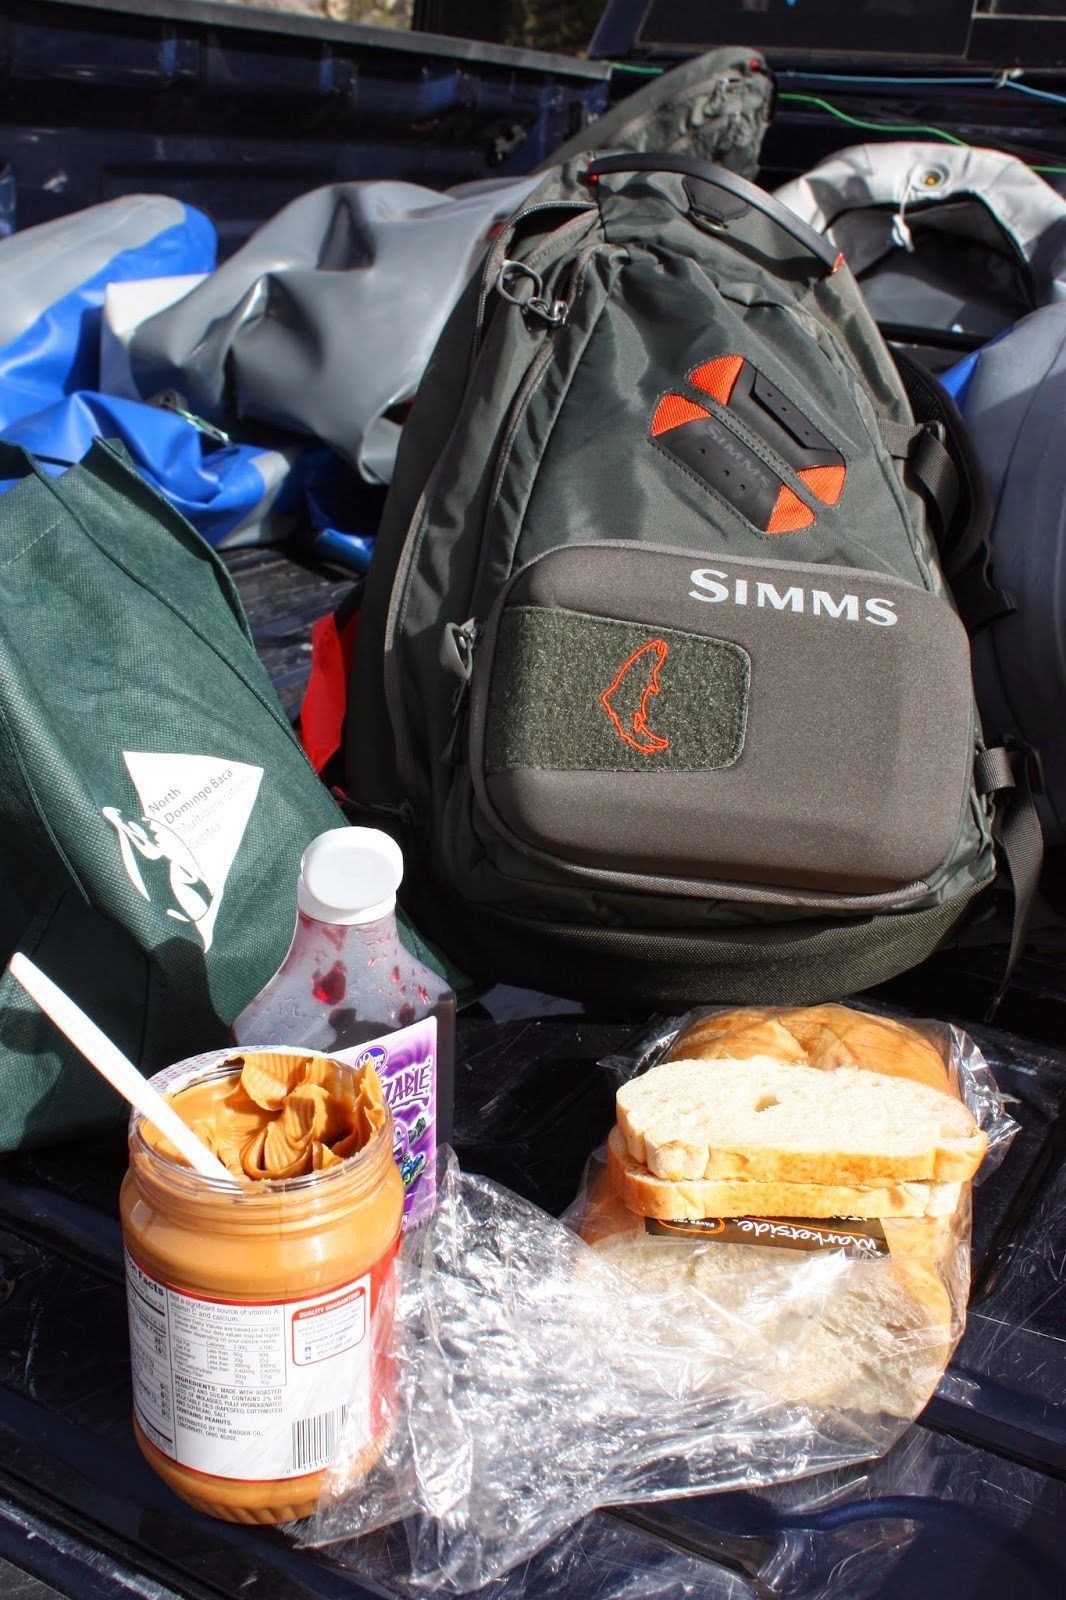 Simms Headwaters Sling Pack: Peanut butter jelly time